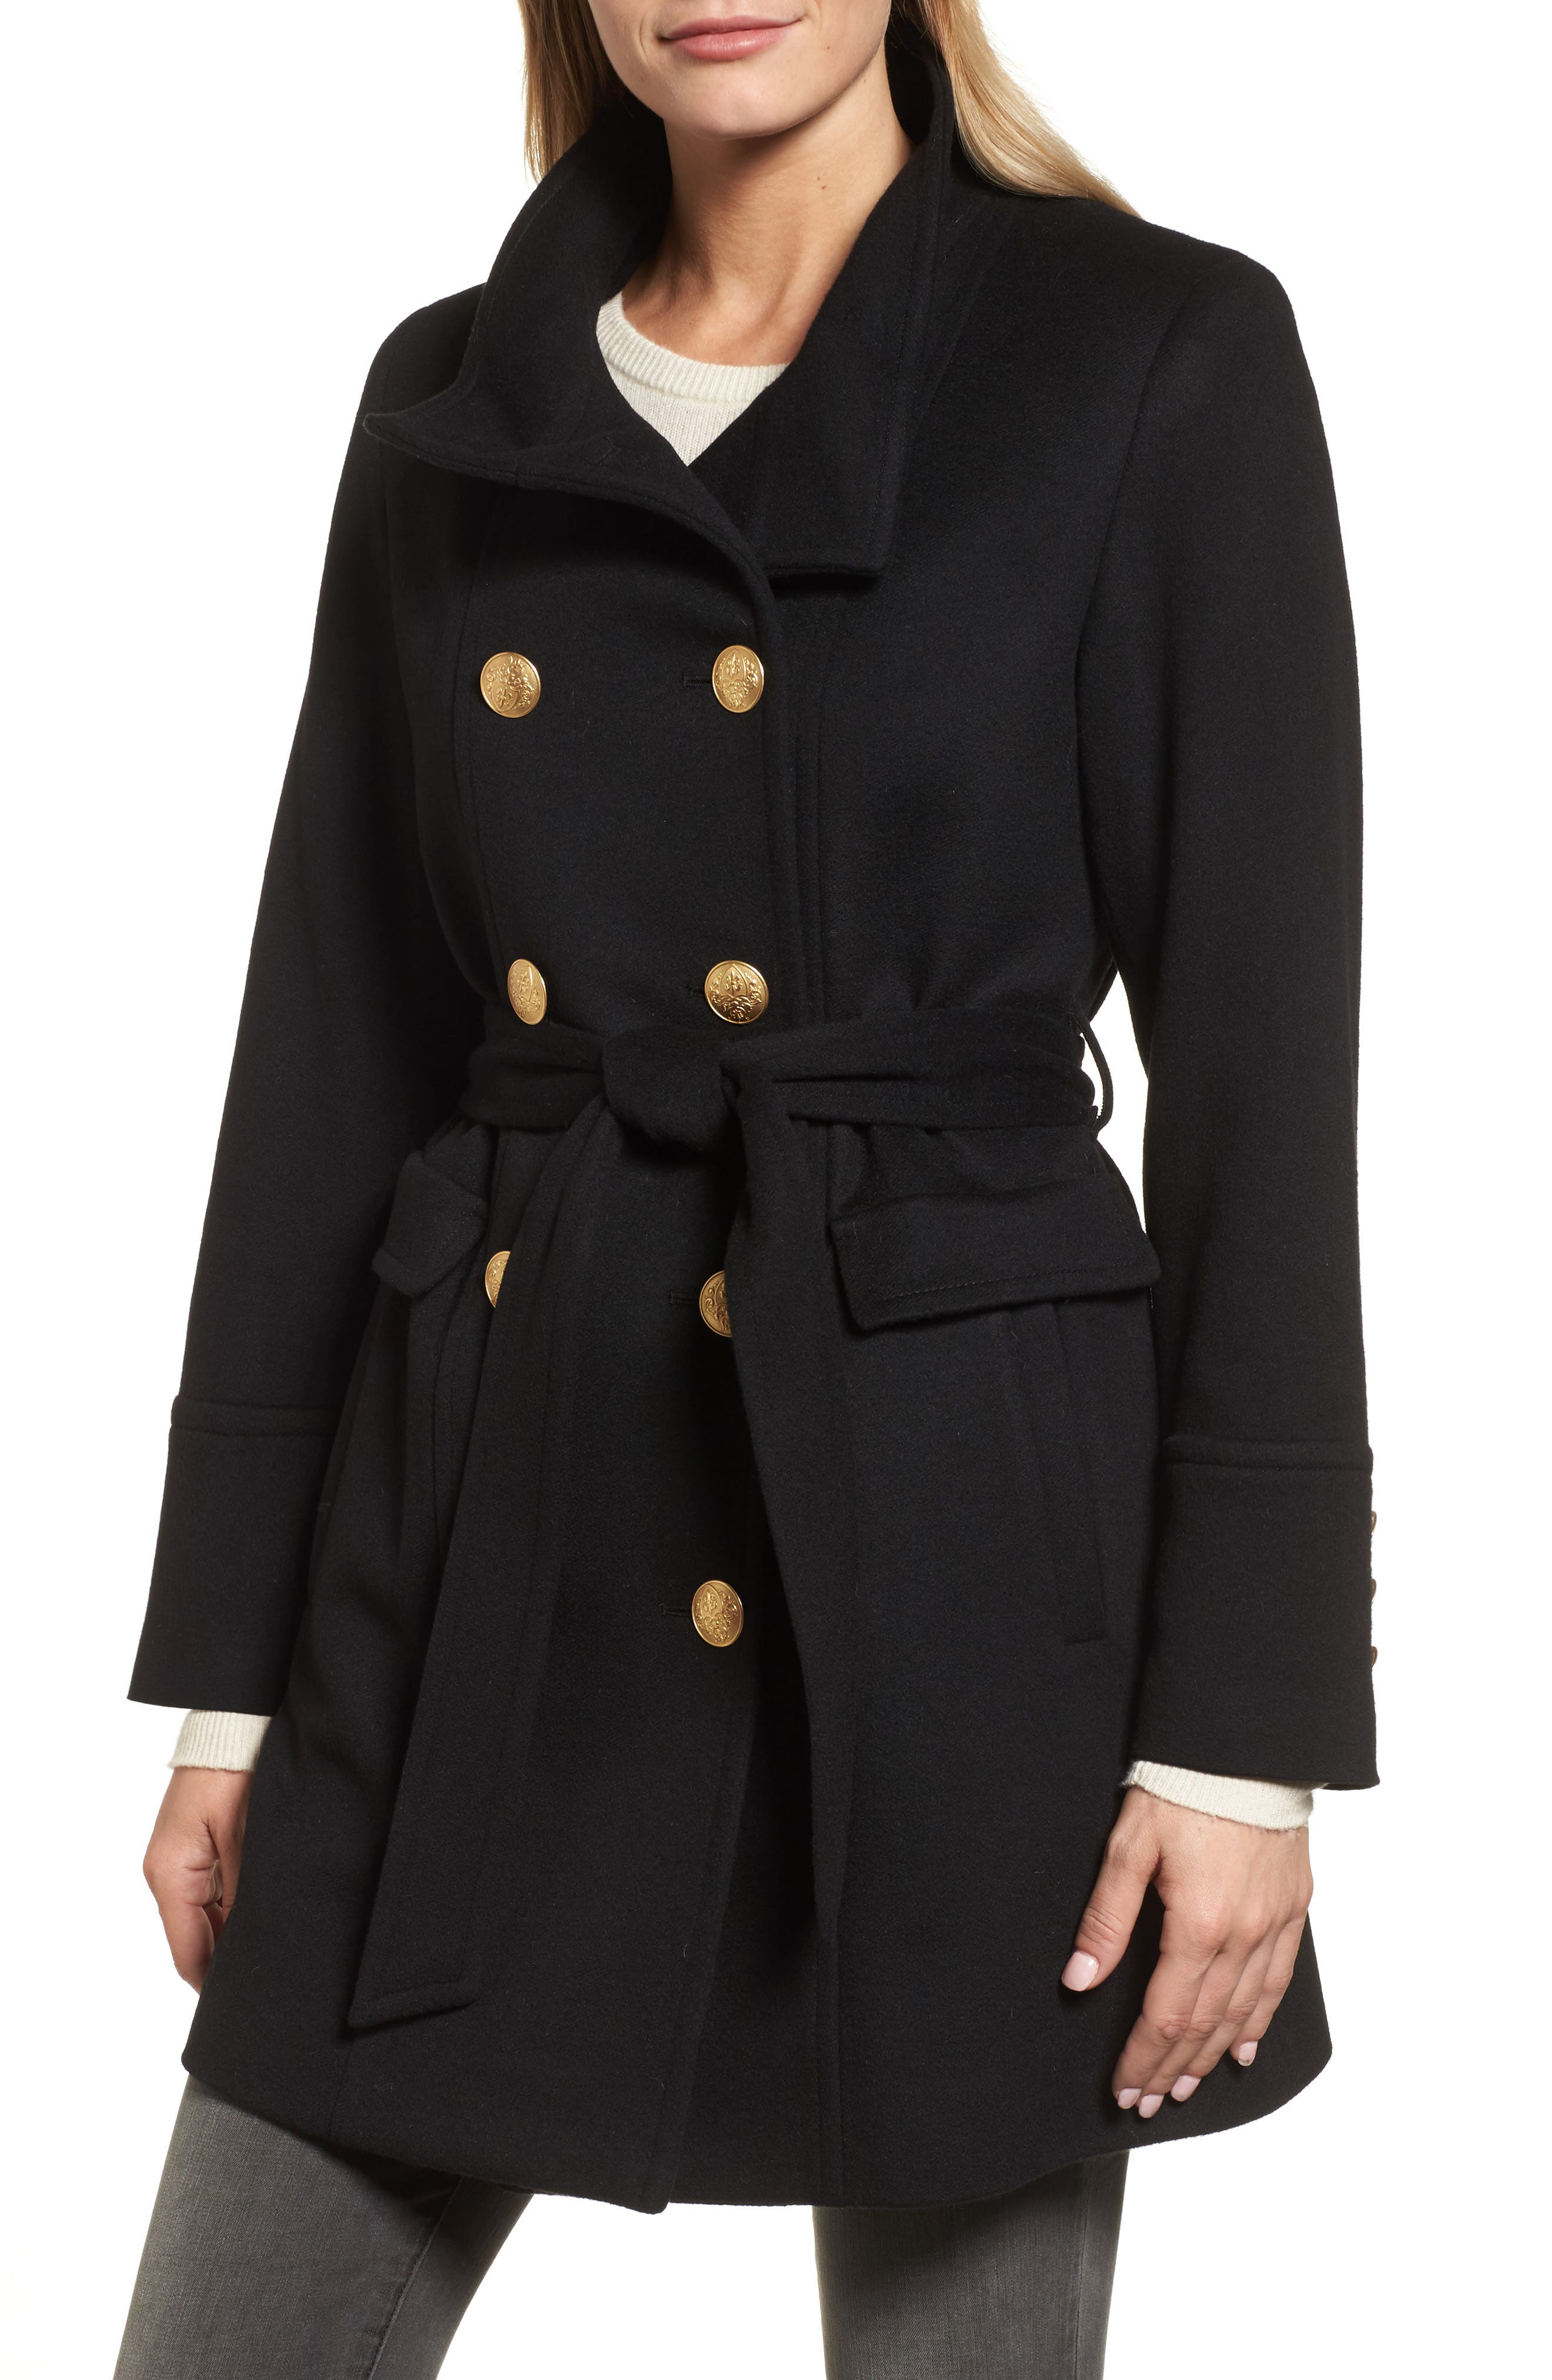 Main Image - Sofia Cashmere Wool & Cashmere Blend Military Coat